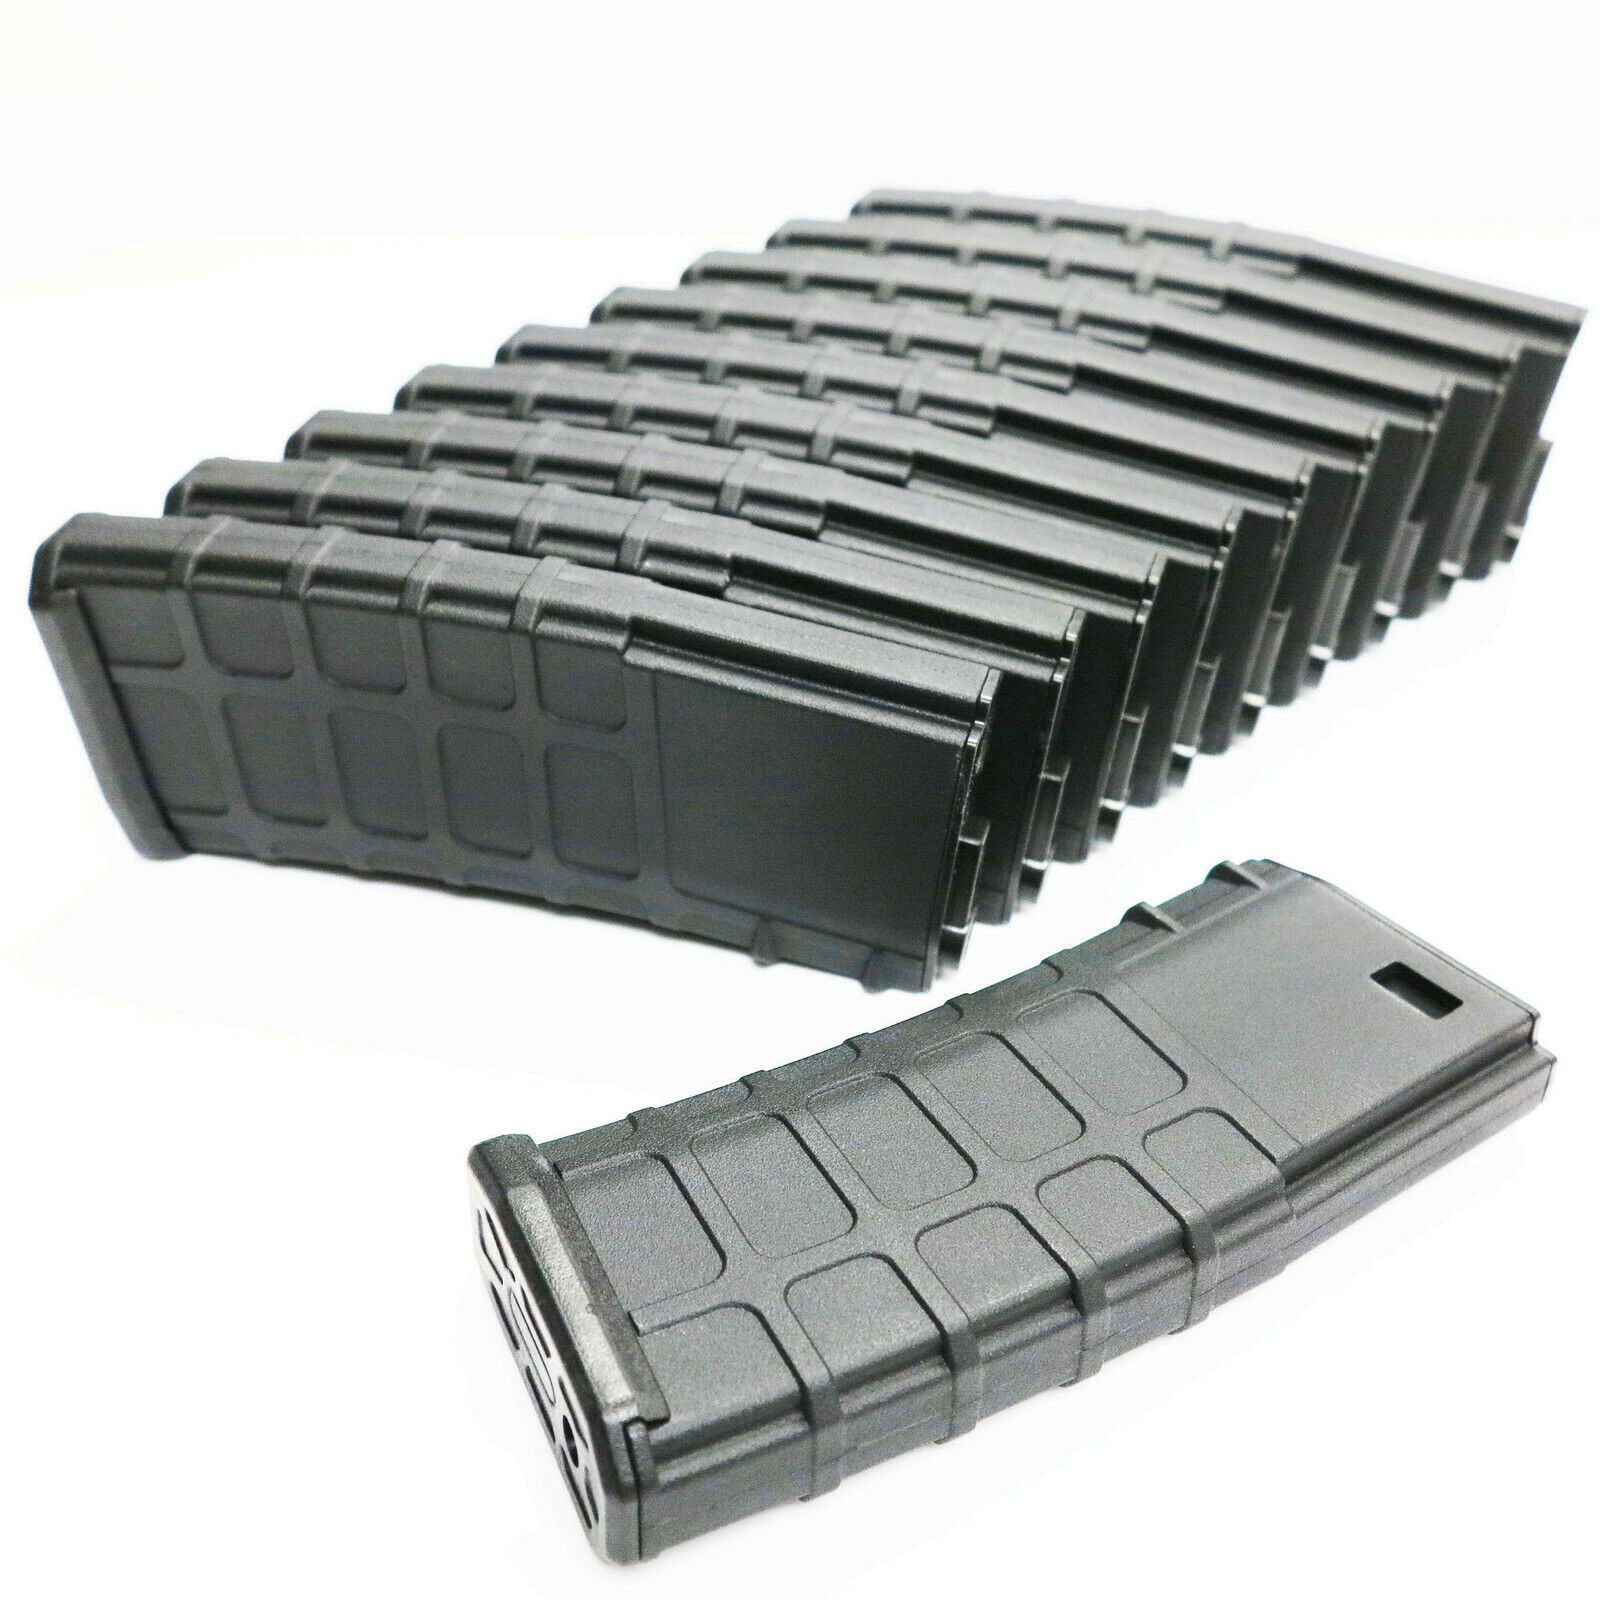 Airsoft G&P 130rd GMAG Mid-Cap Magazine for Toyko Marui M Series AEG (10pcs BK)